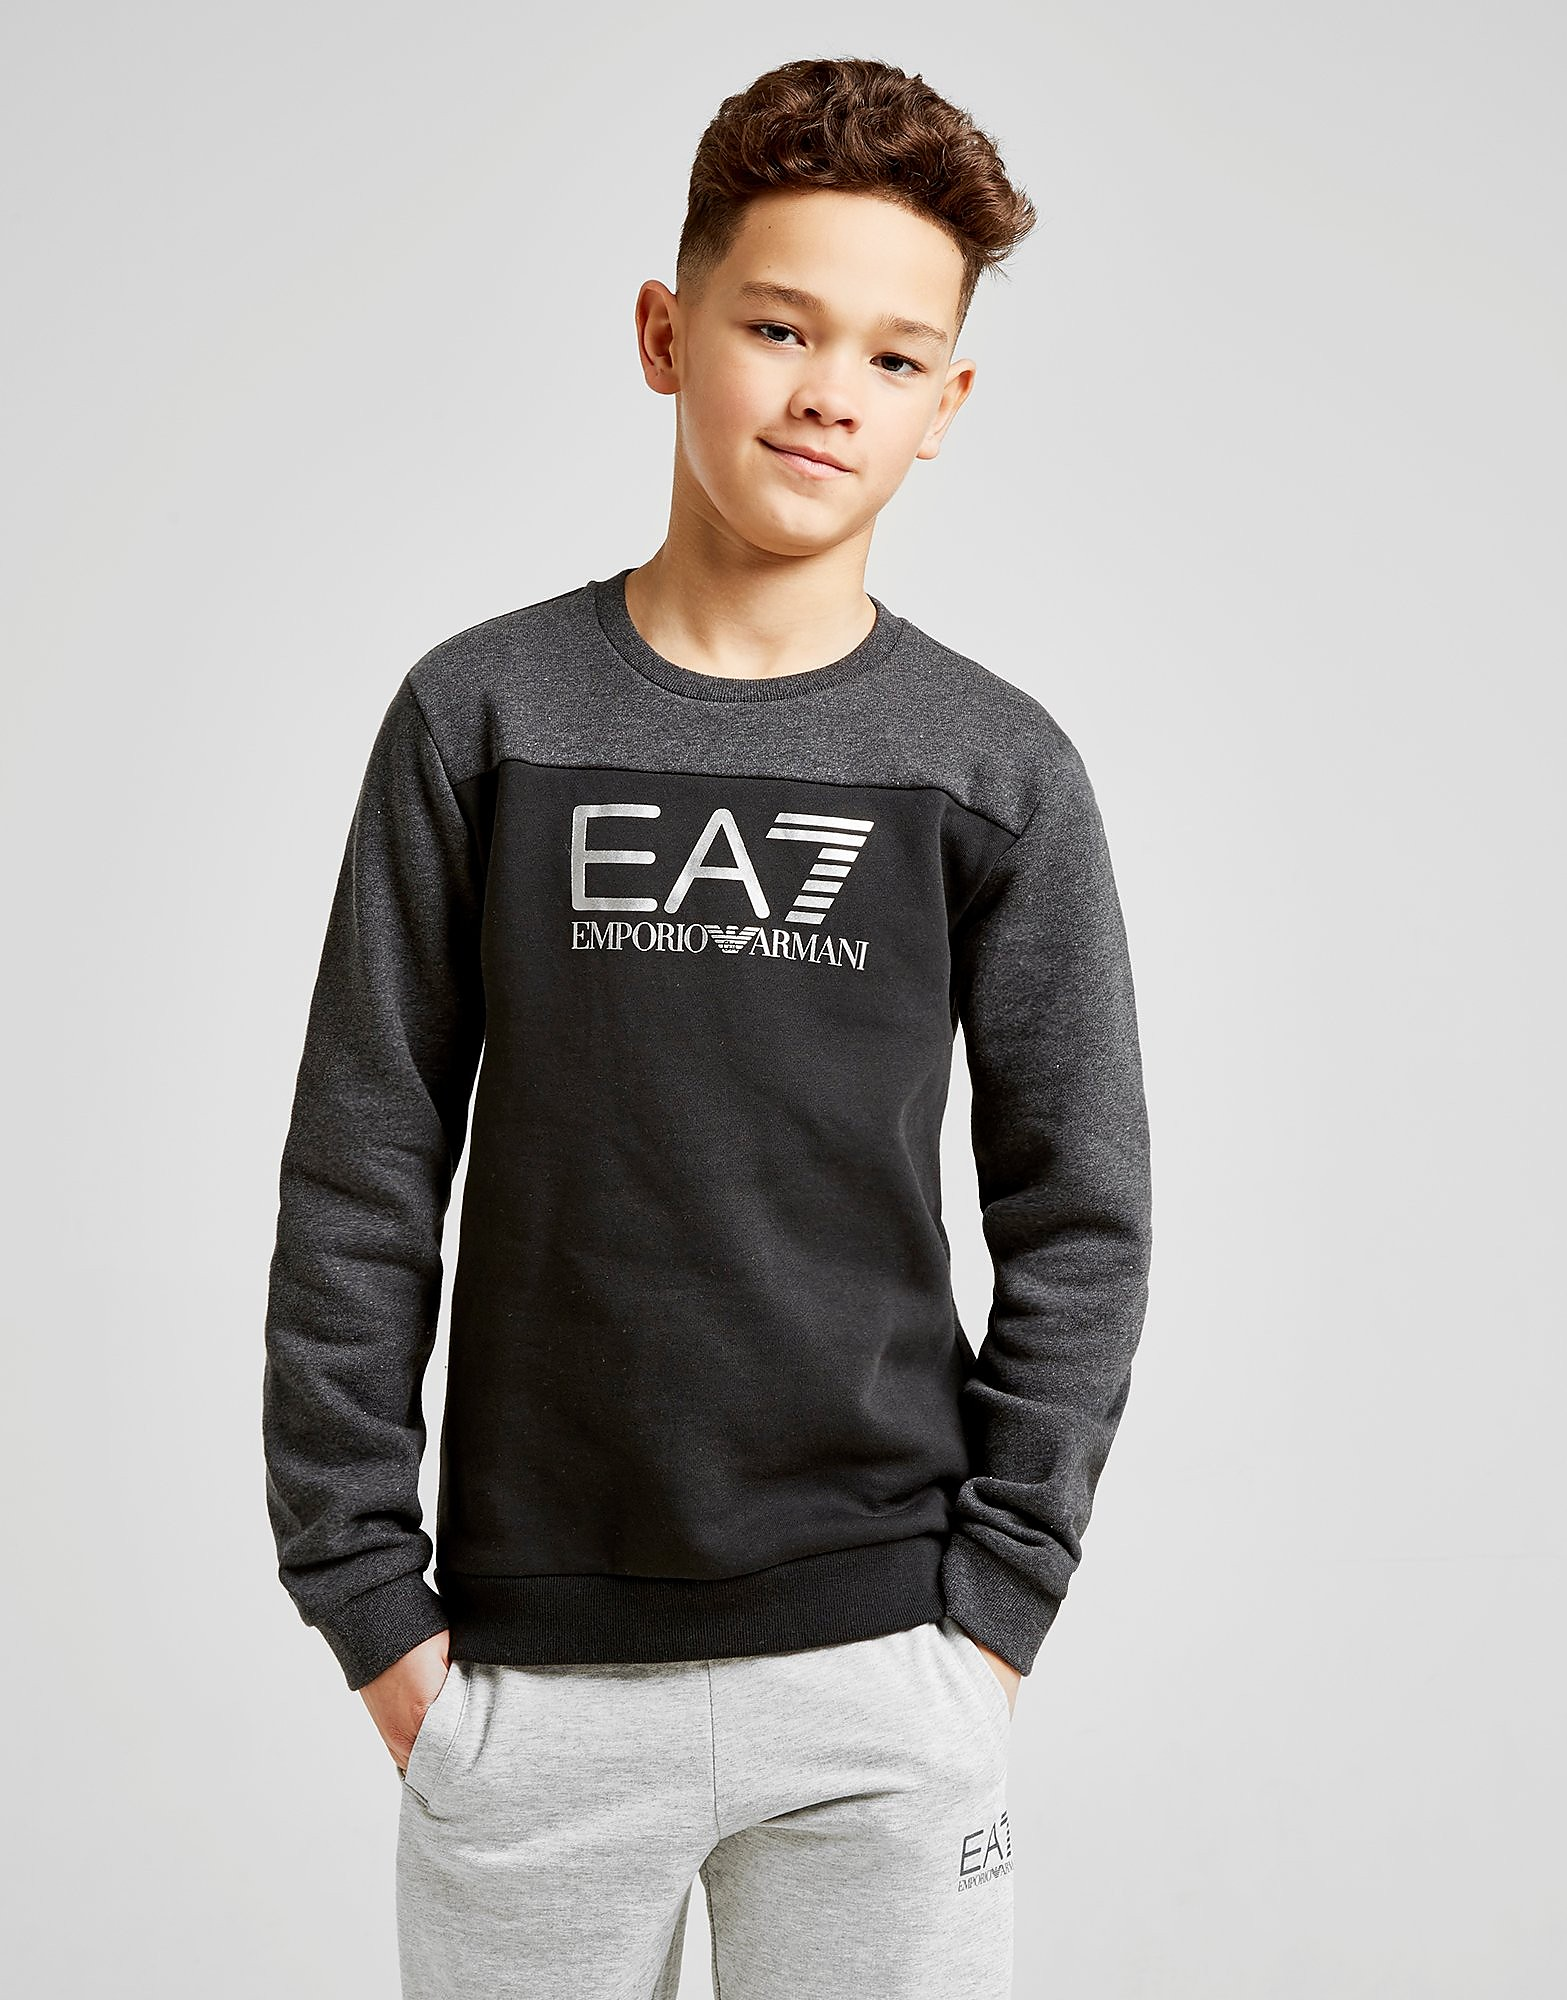 Emporio Armani EA7 Tritional Foil Crew Sweatshirt Junior - Zwart - Kind